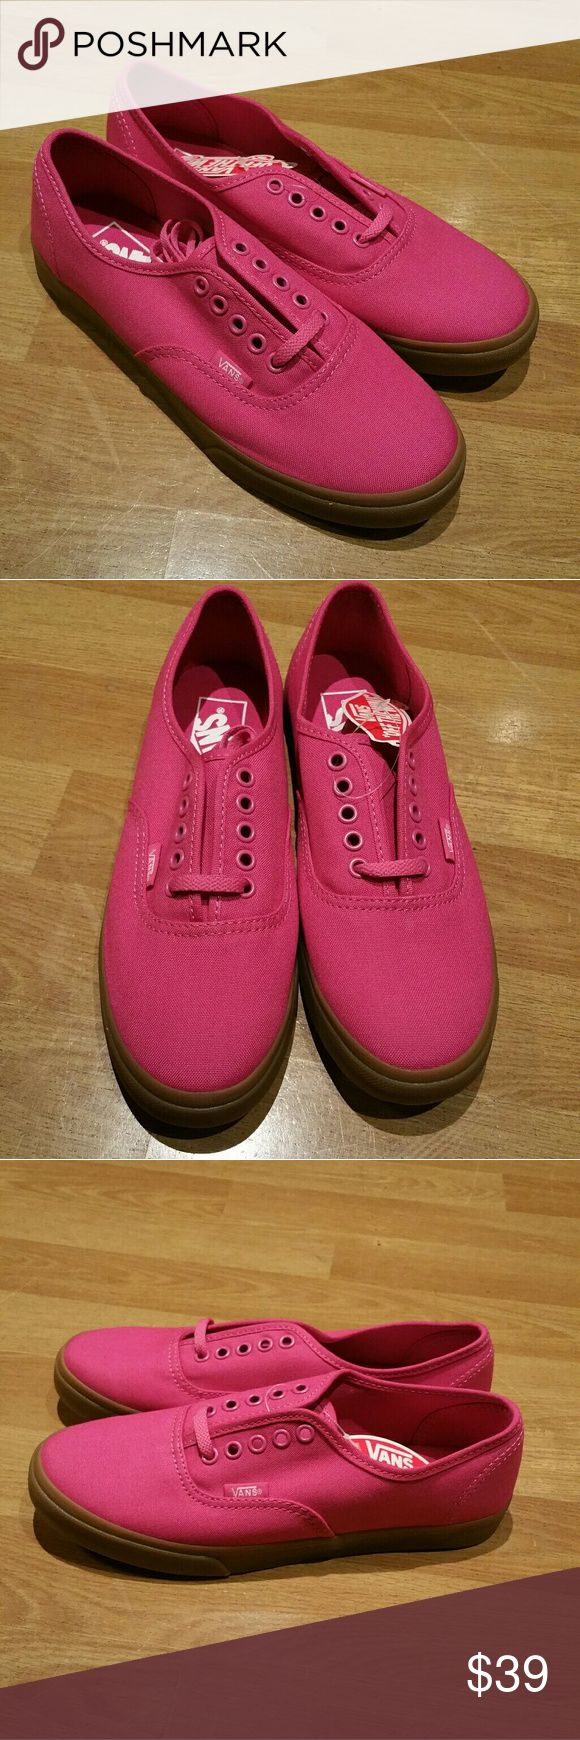 Women's Vans sneakers Brand new. Size 6. Never worn. Vans Shoes Sneakers